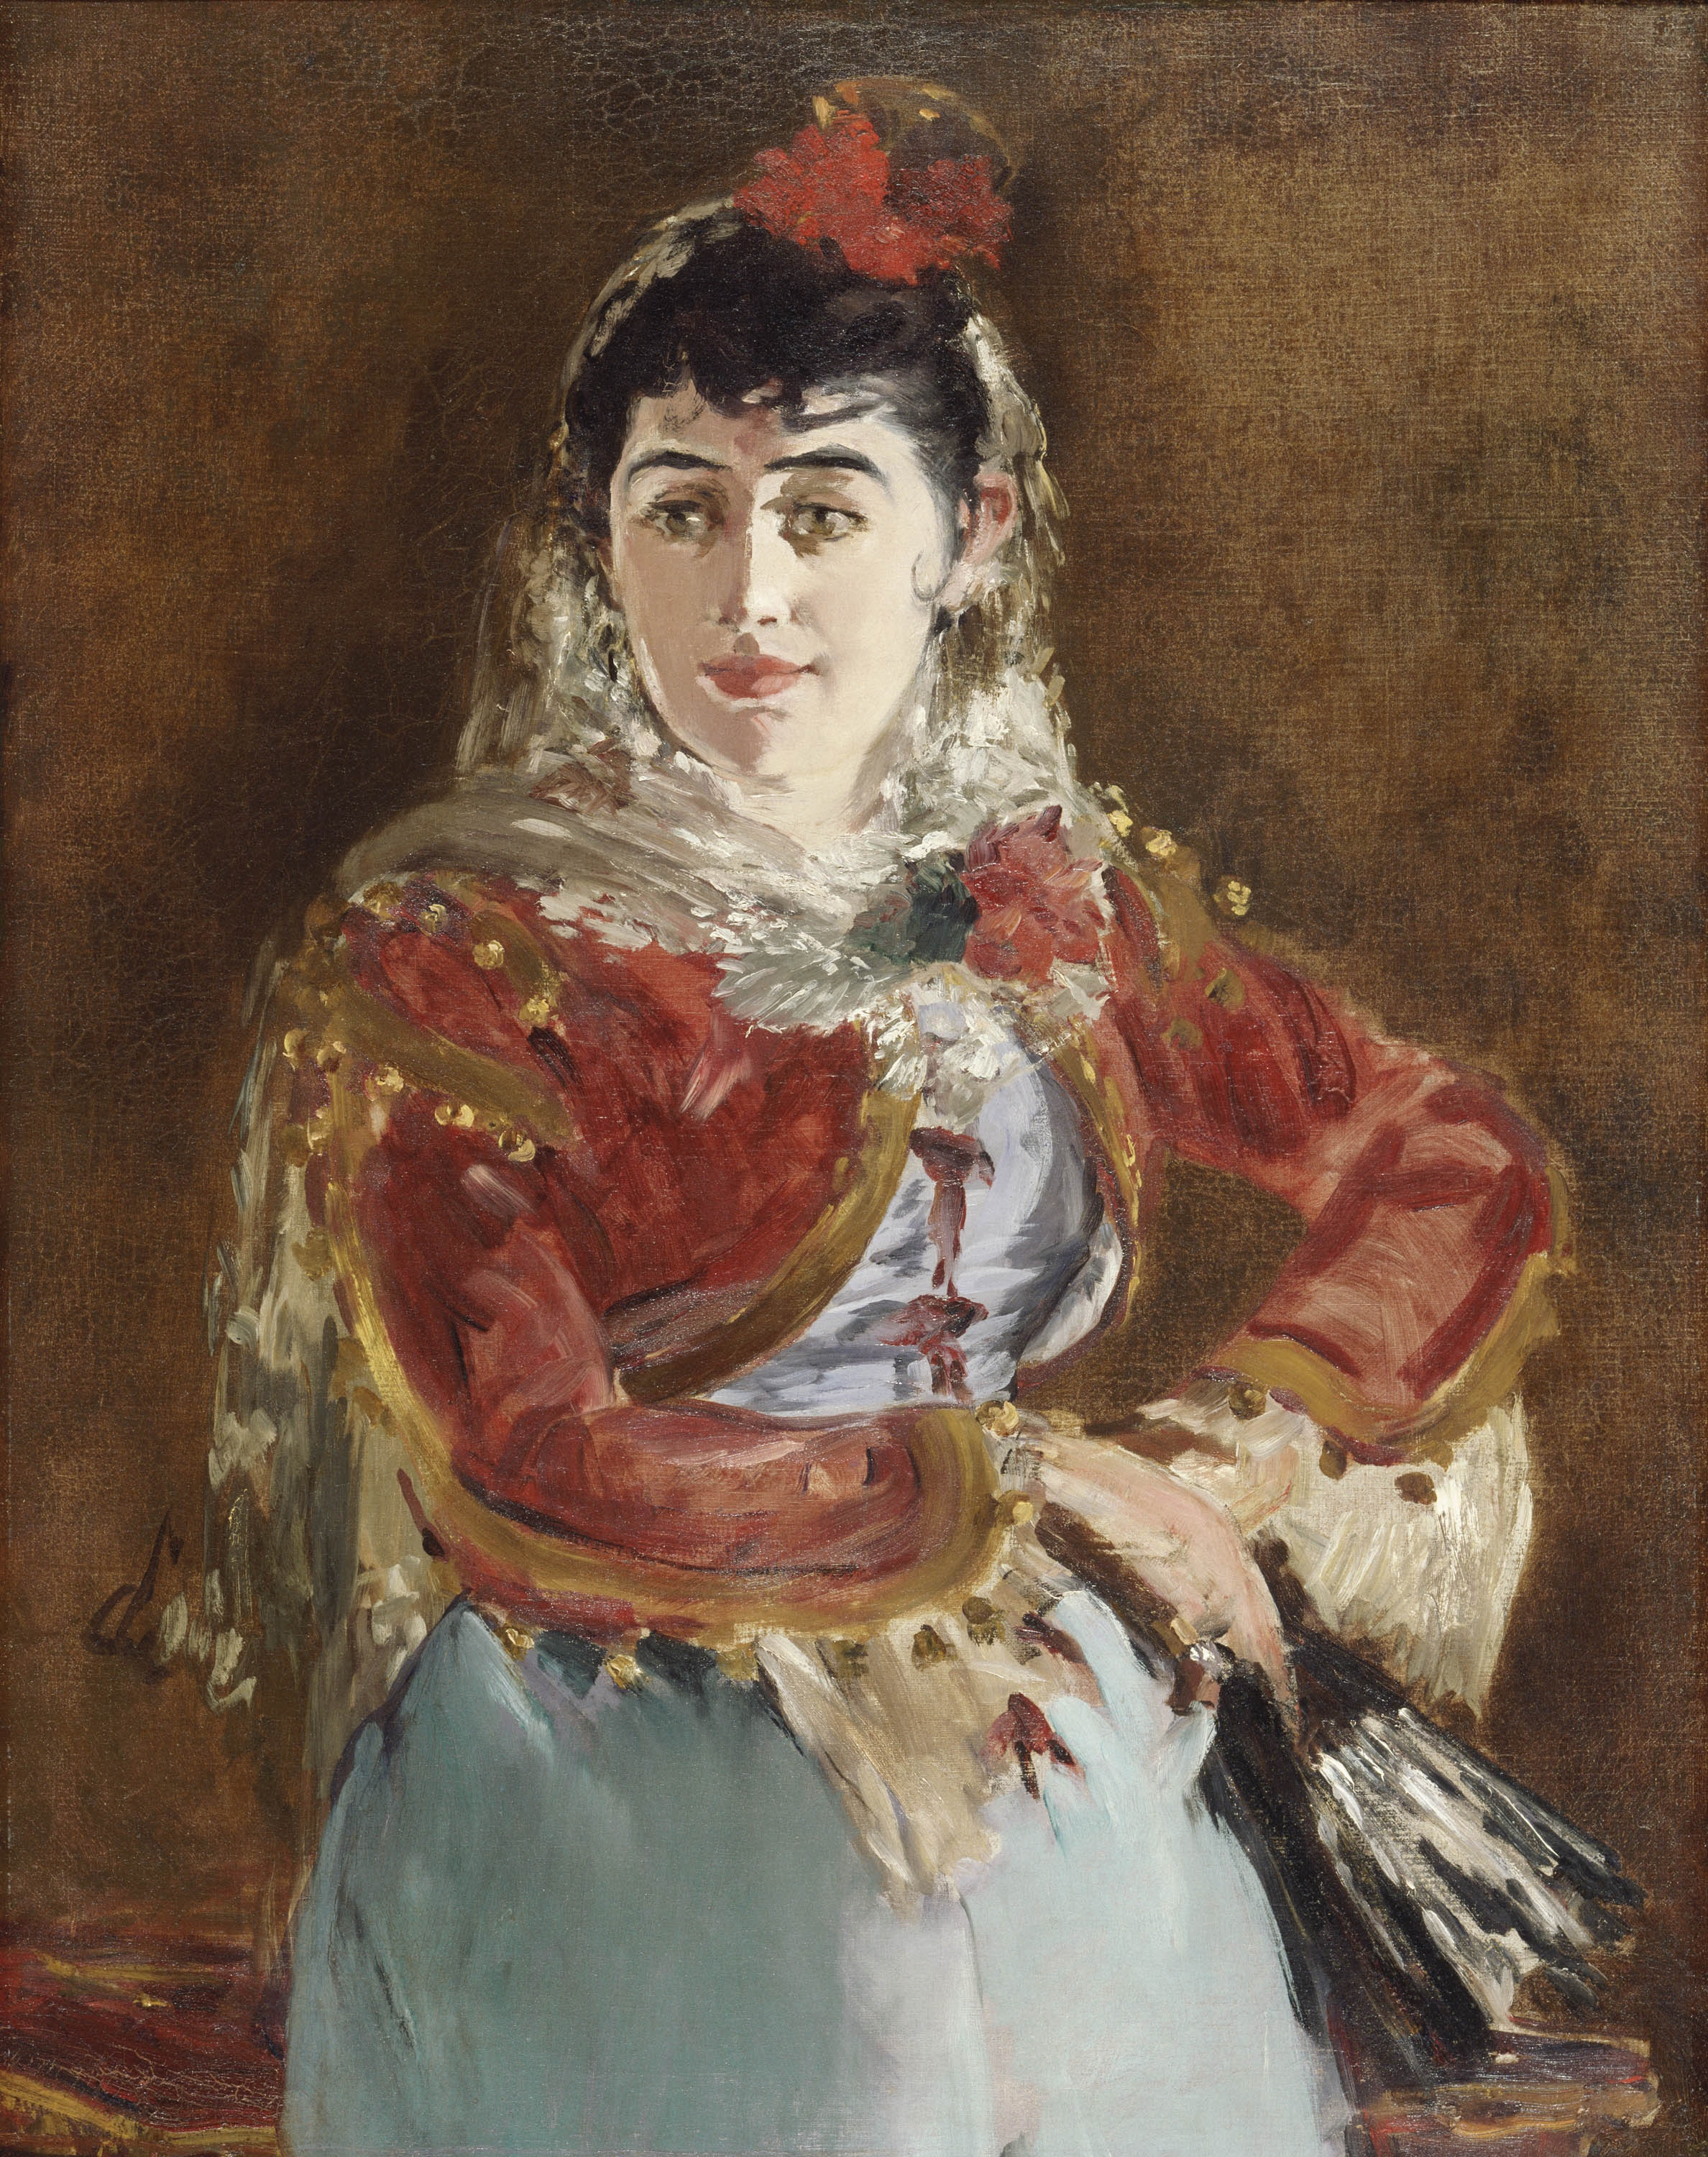 A painting of a dancer in Spanish costume.